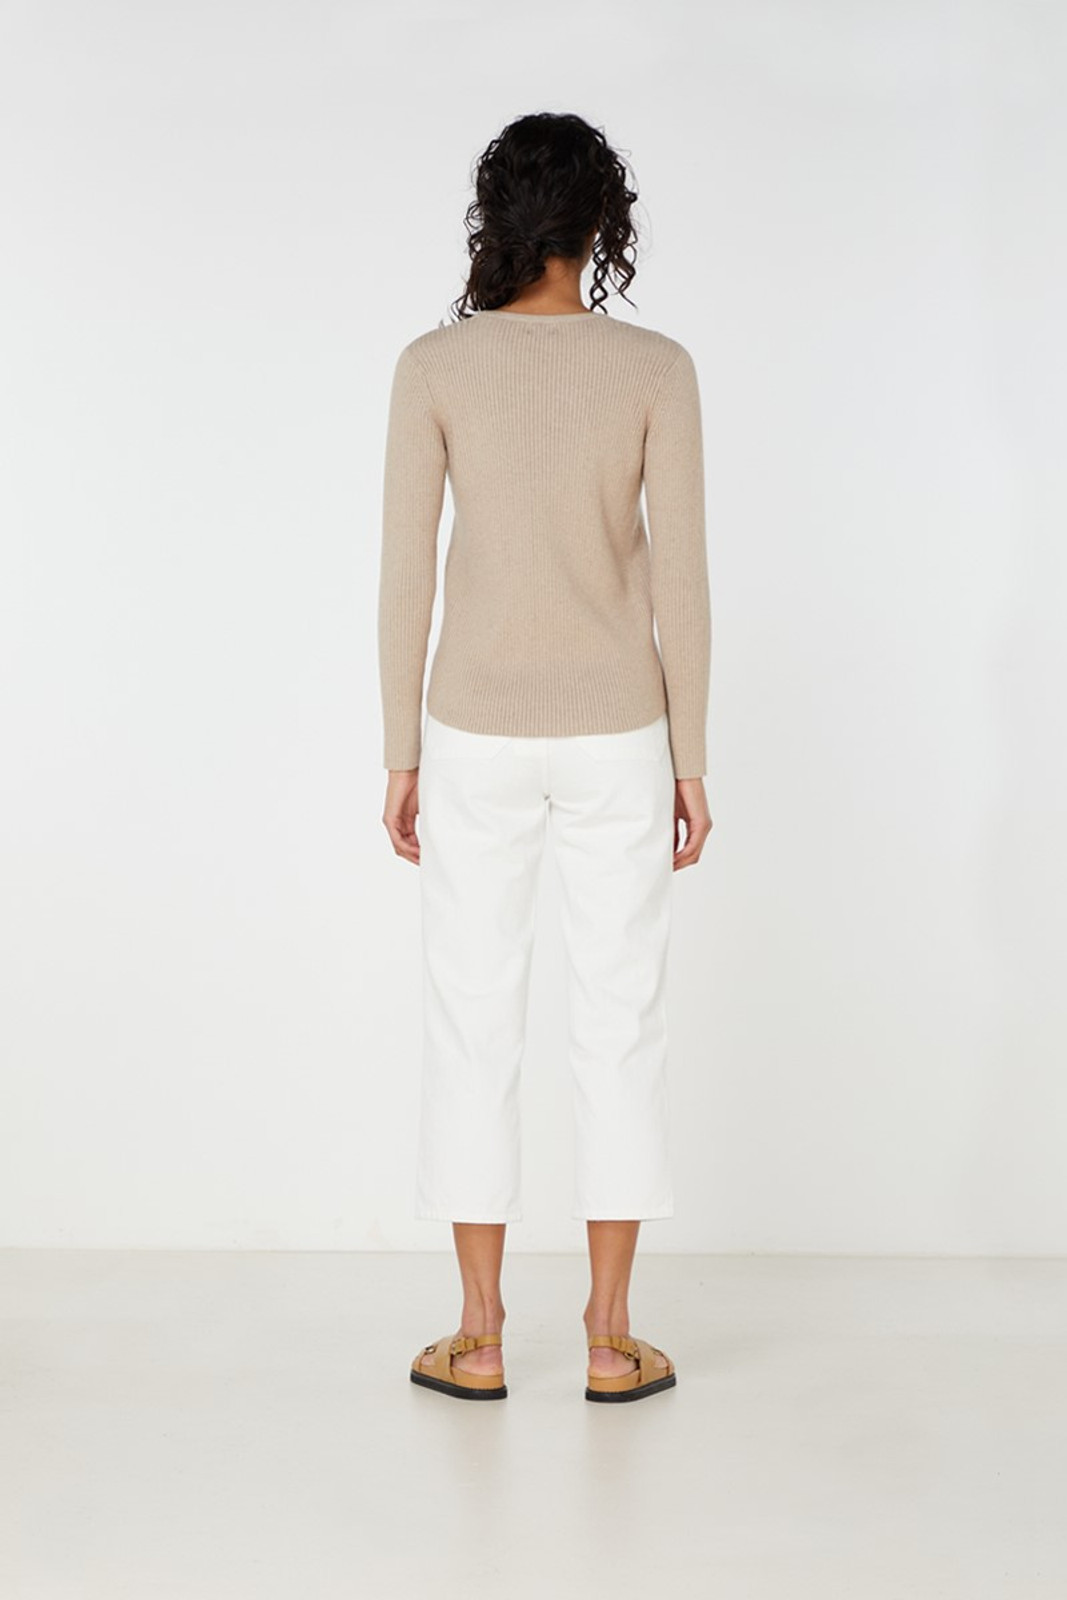 Elka Collective Houston Knit Neutrals  5